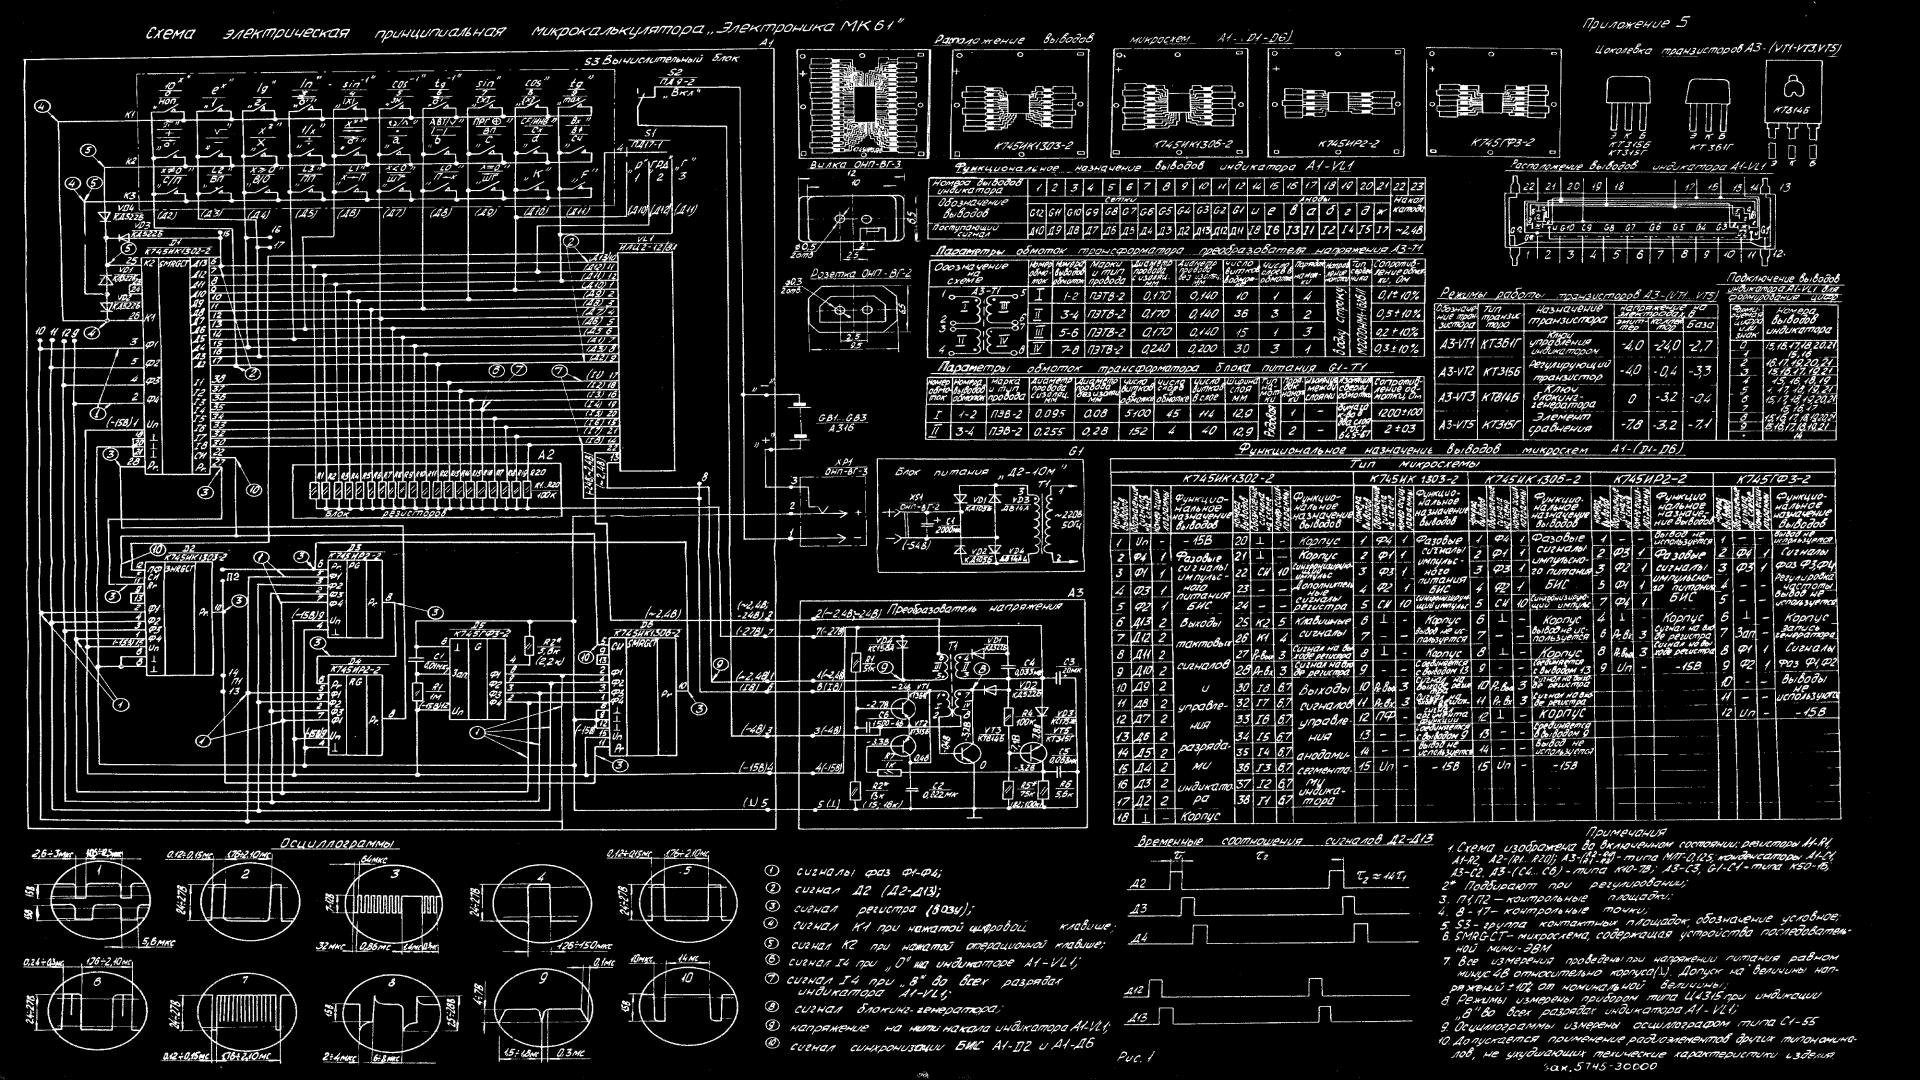 electrical wiring schematic diagram 3 schematic hd wallpapers background images wallpaper industrial electrical wiring schematic